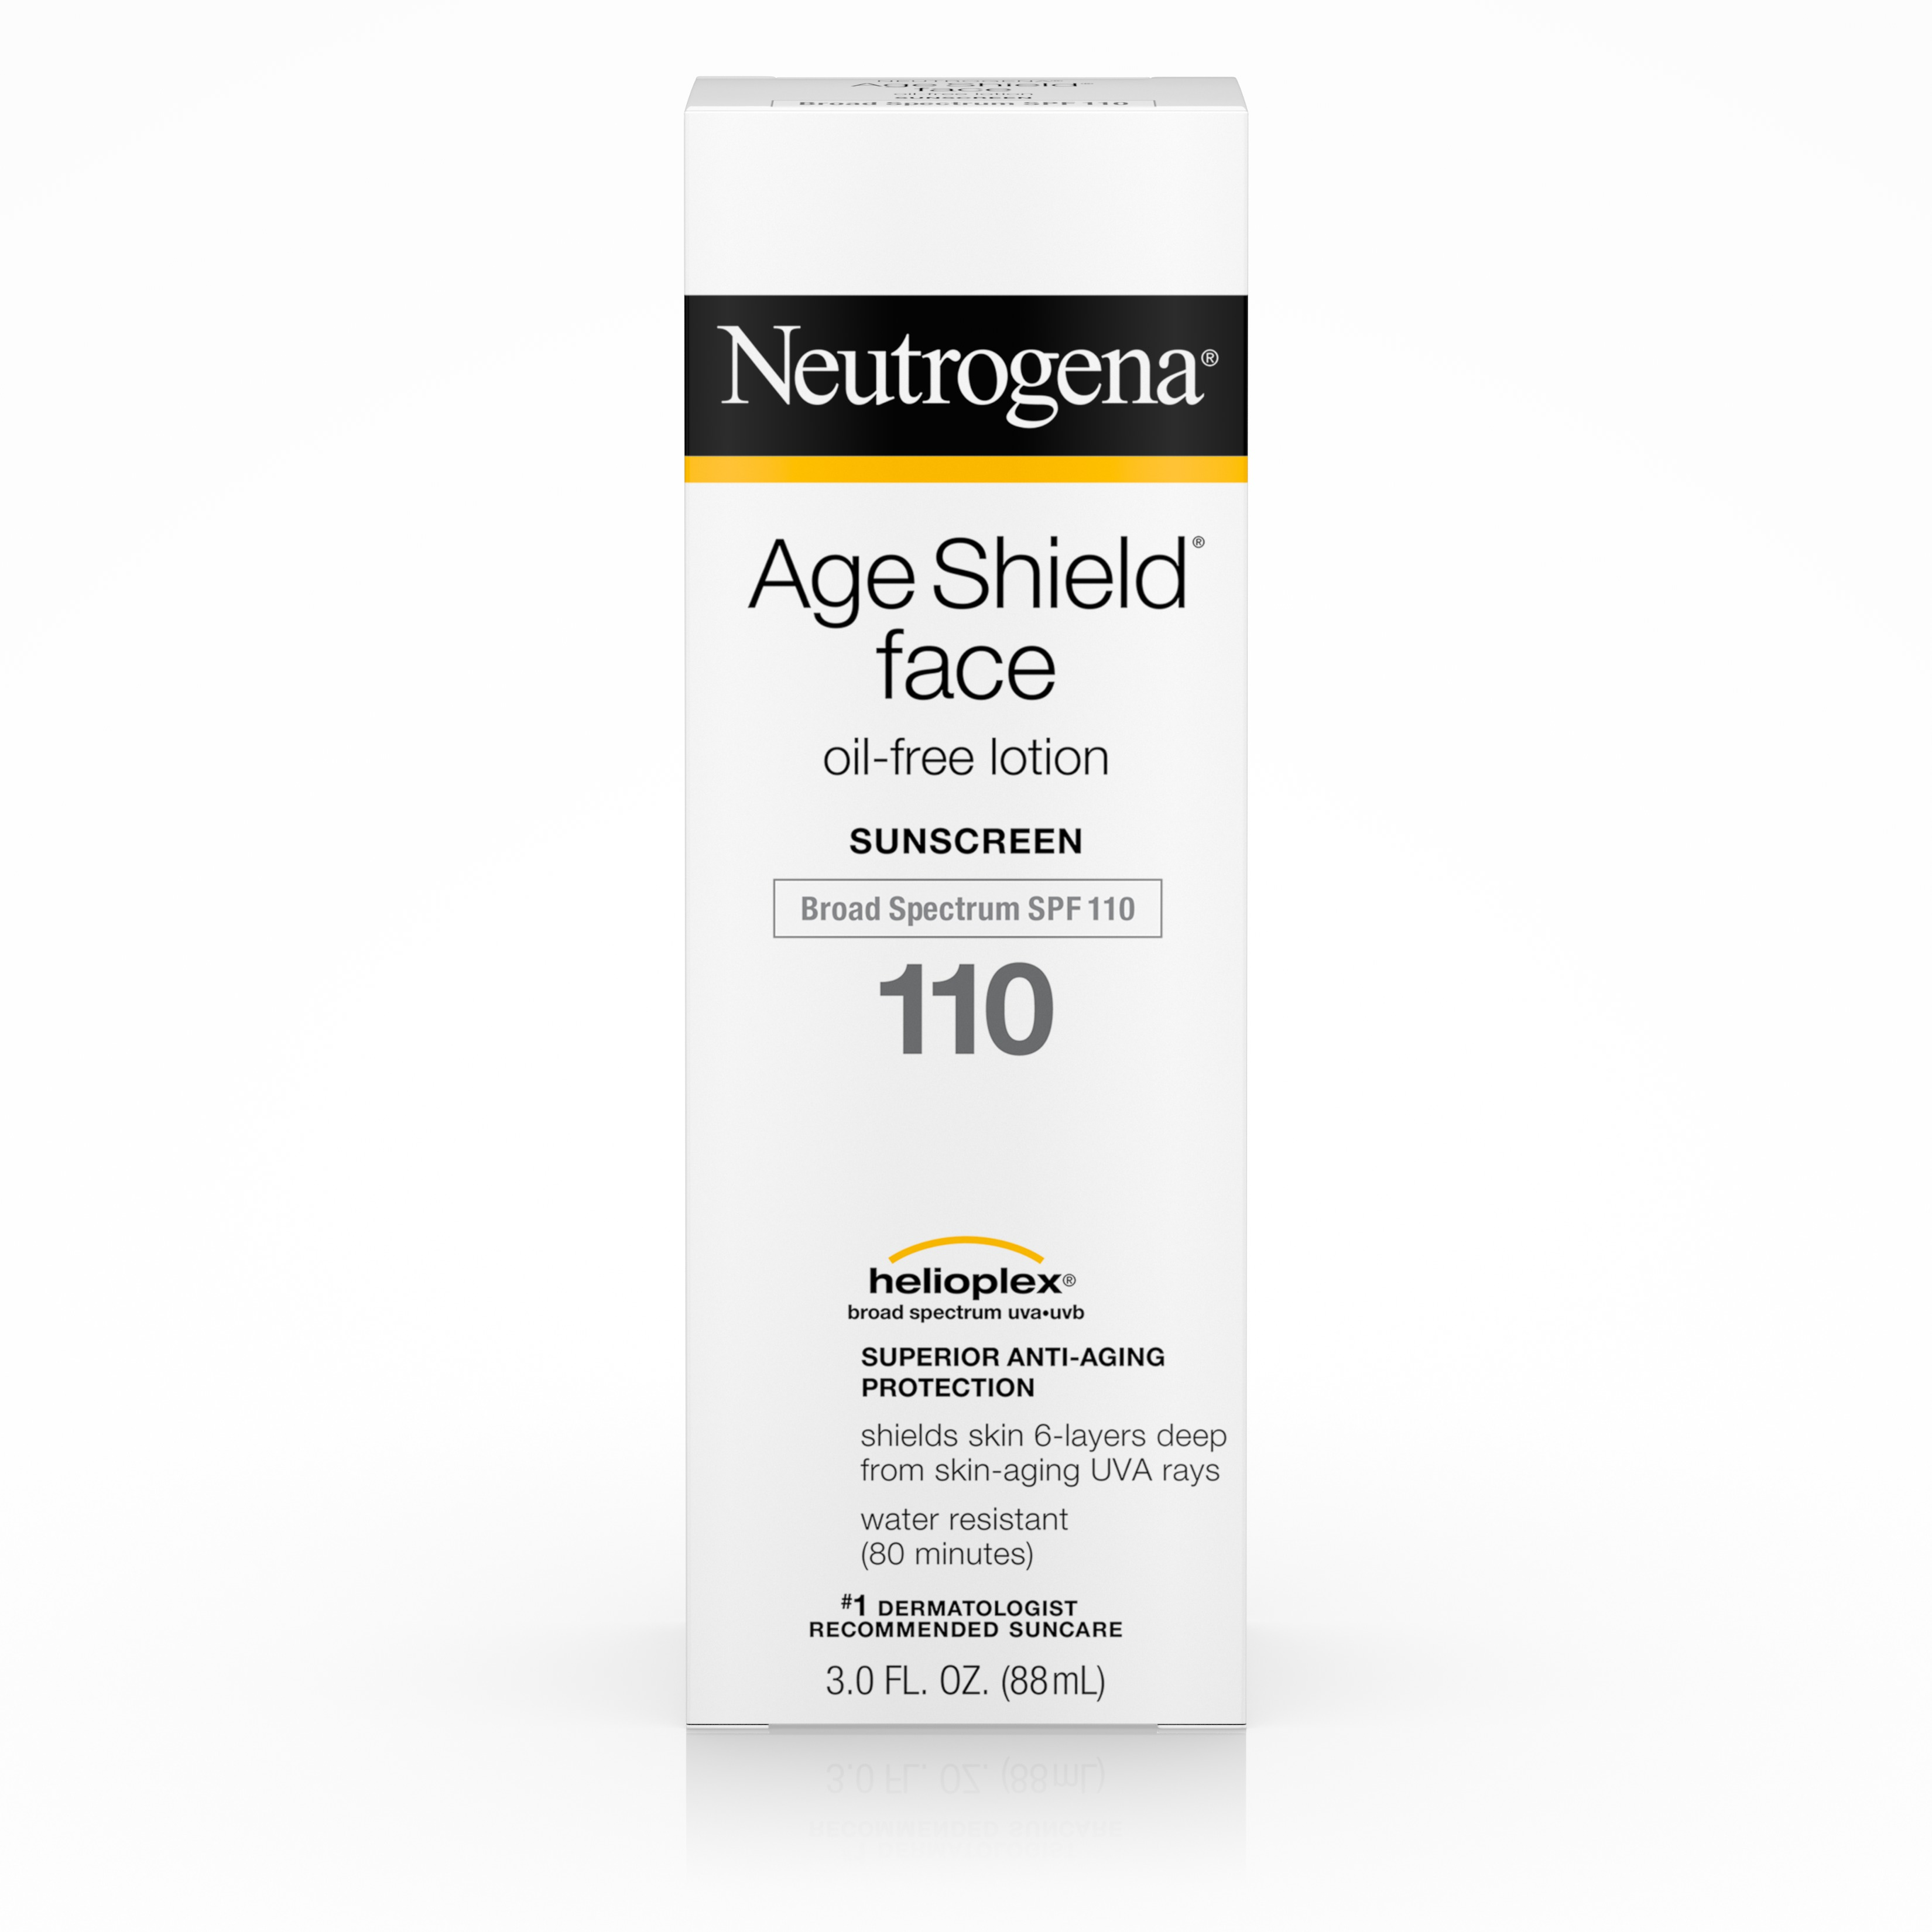 Neutrogena Age Shield Face Oil-Free Lotion Sunscreen Broad Spectrum Spf 110, 3 Fl. Oz. - Walmart.com